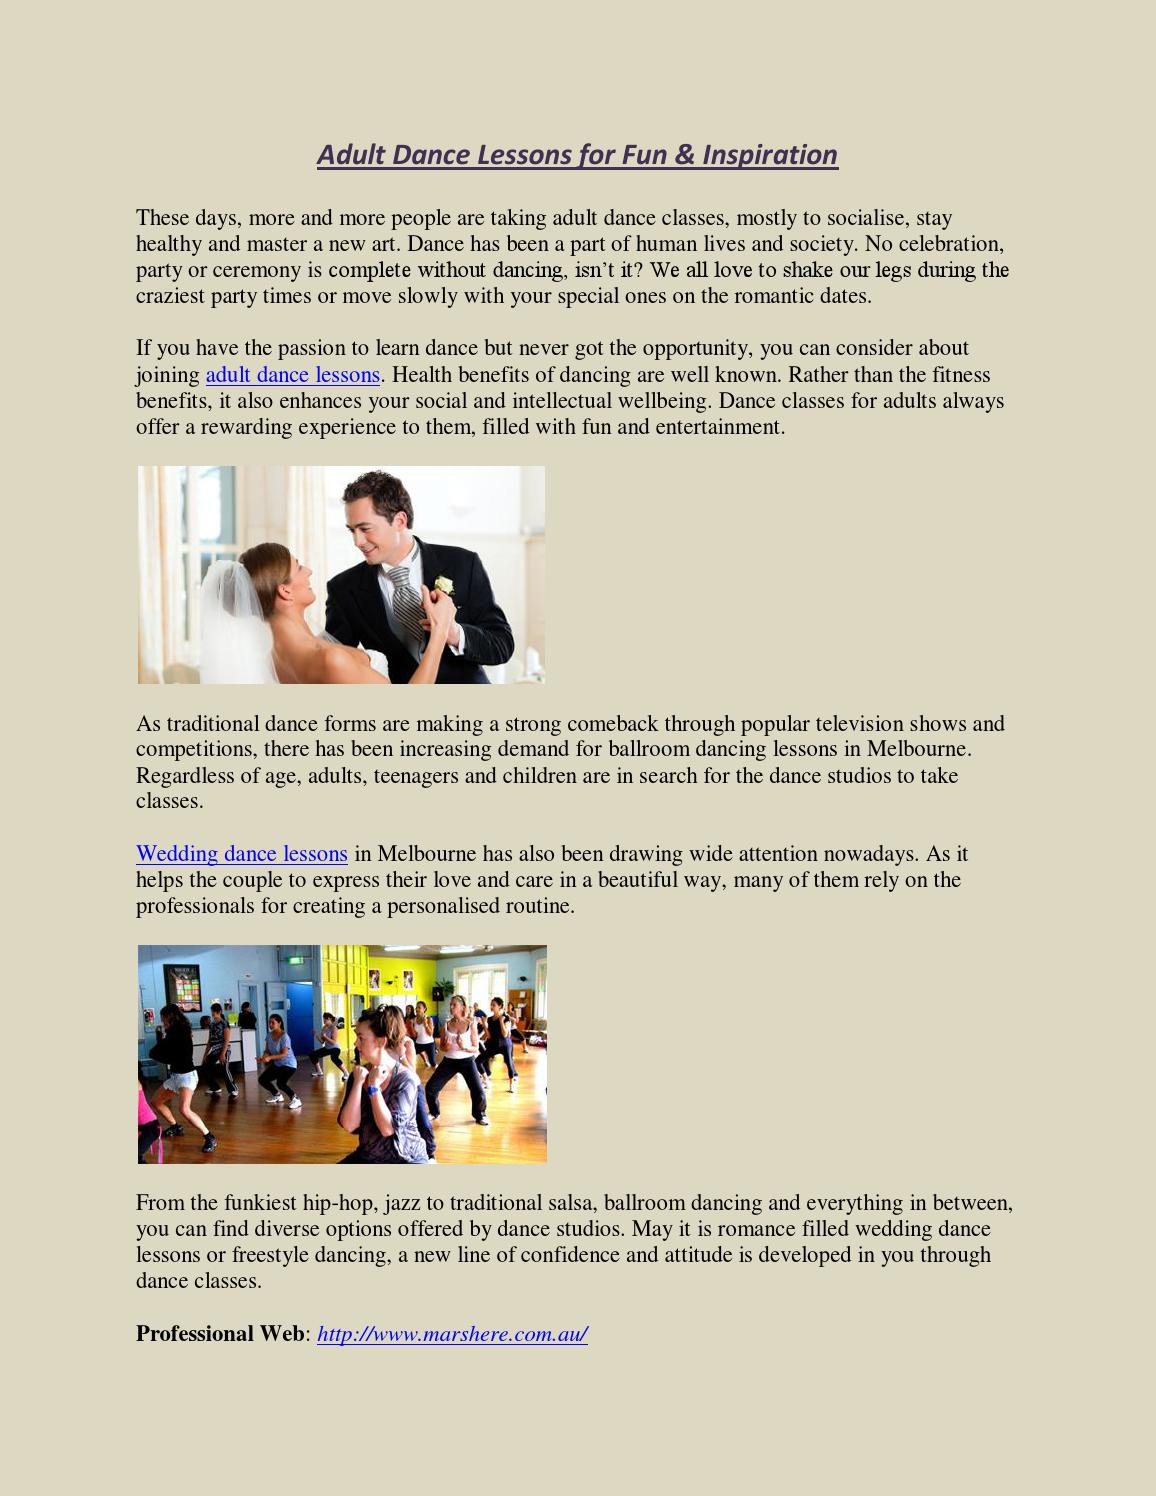 Adult Dance Lessons For Fun Inspiration By Dancing